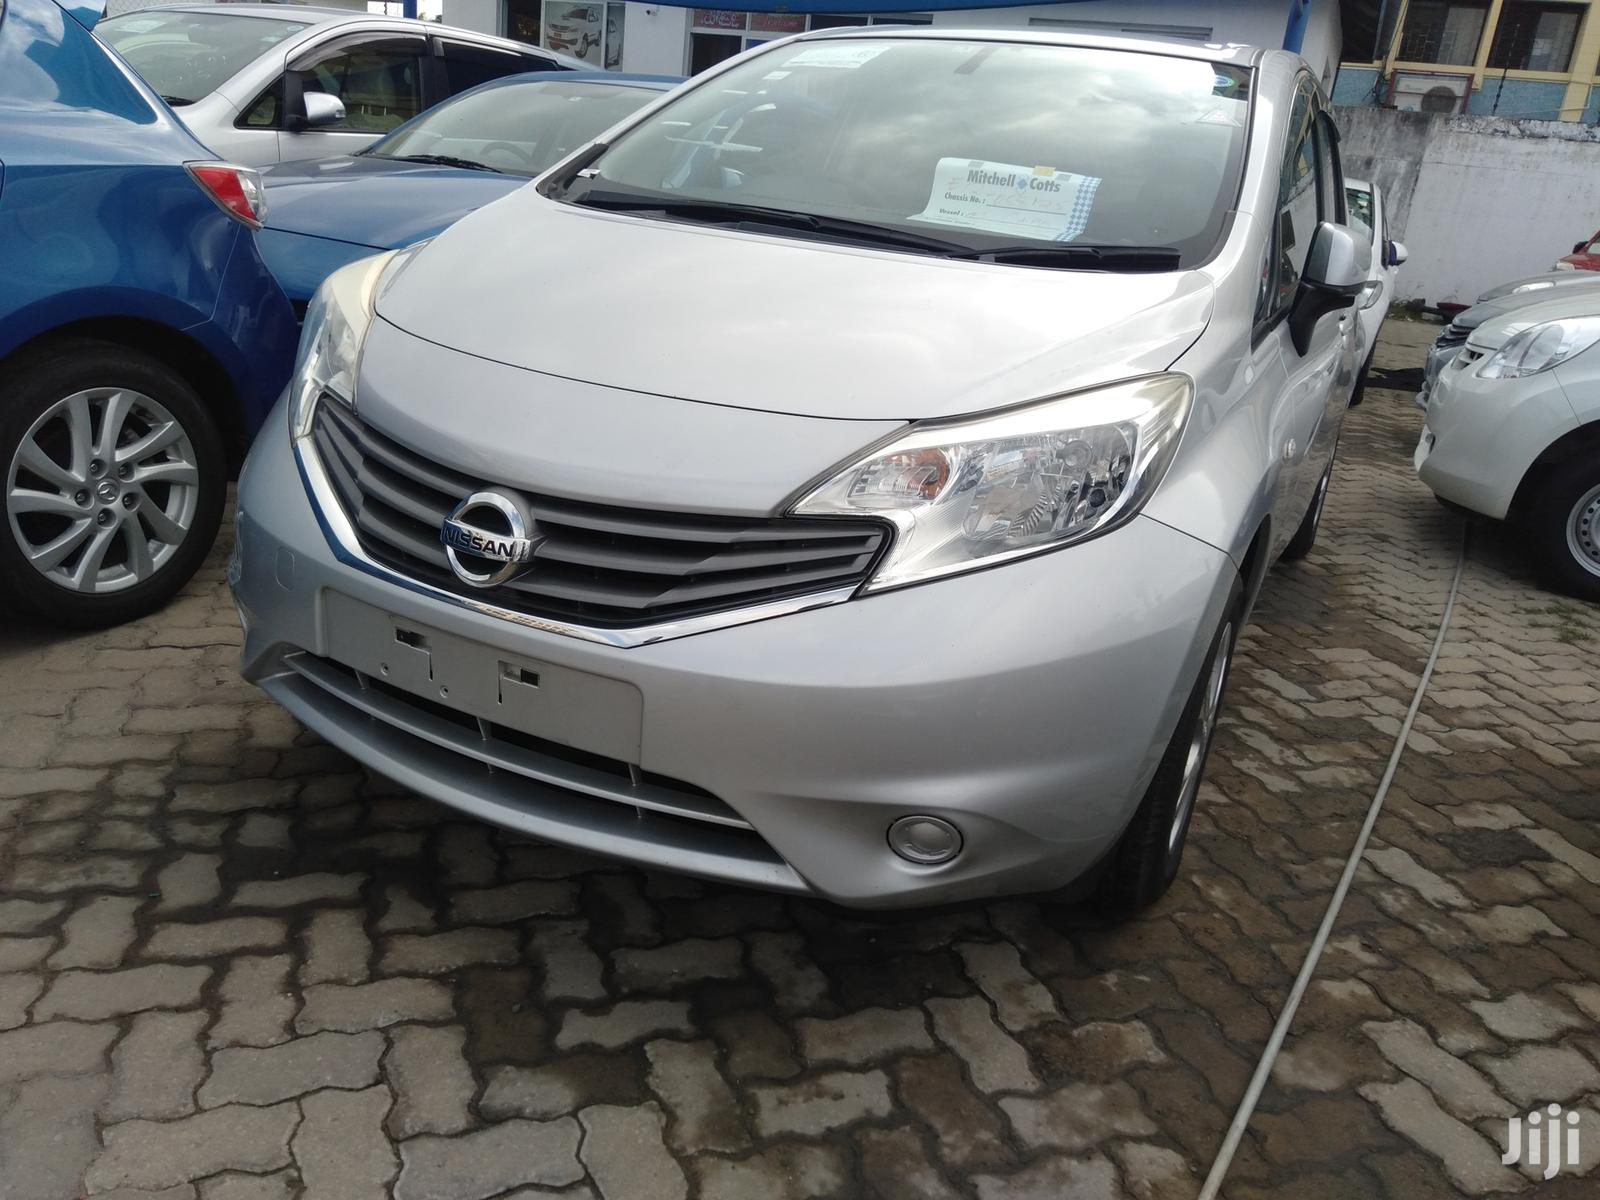 Archive: Nissan Note 2012 1.4 Silver